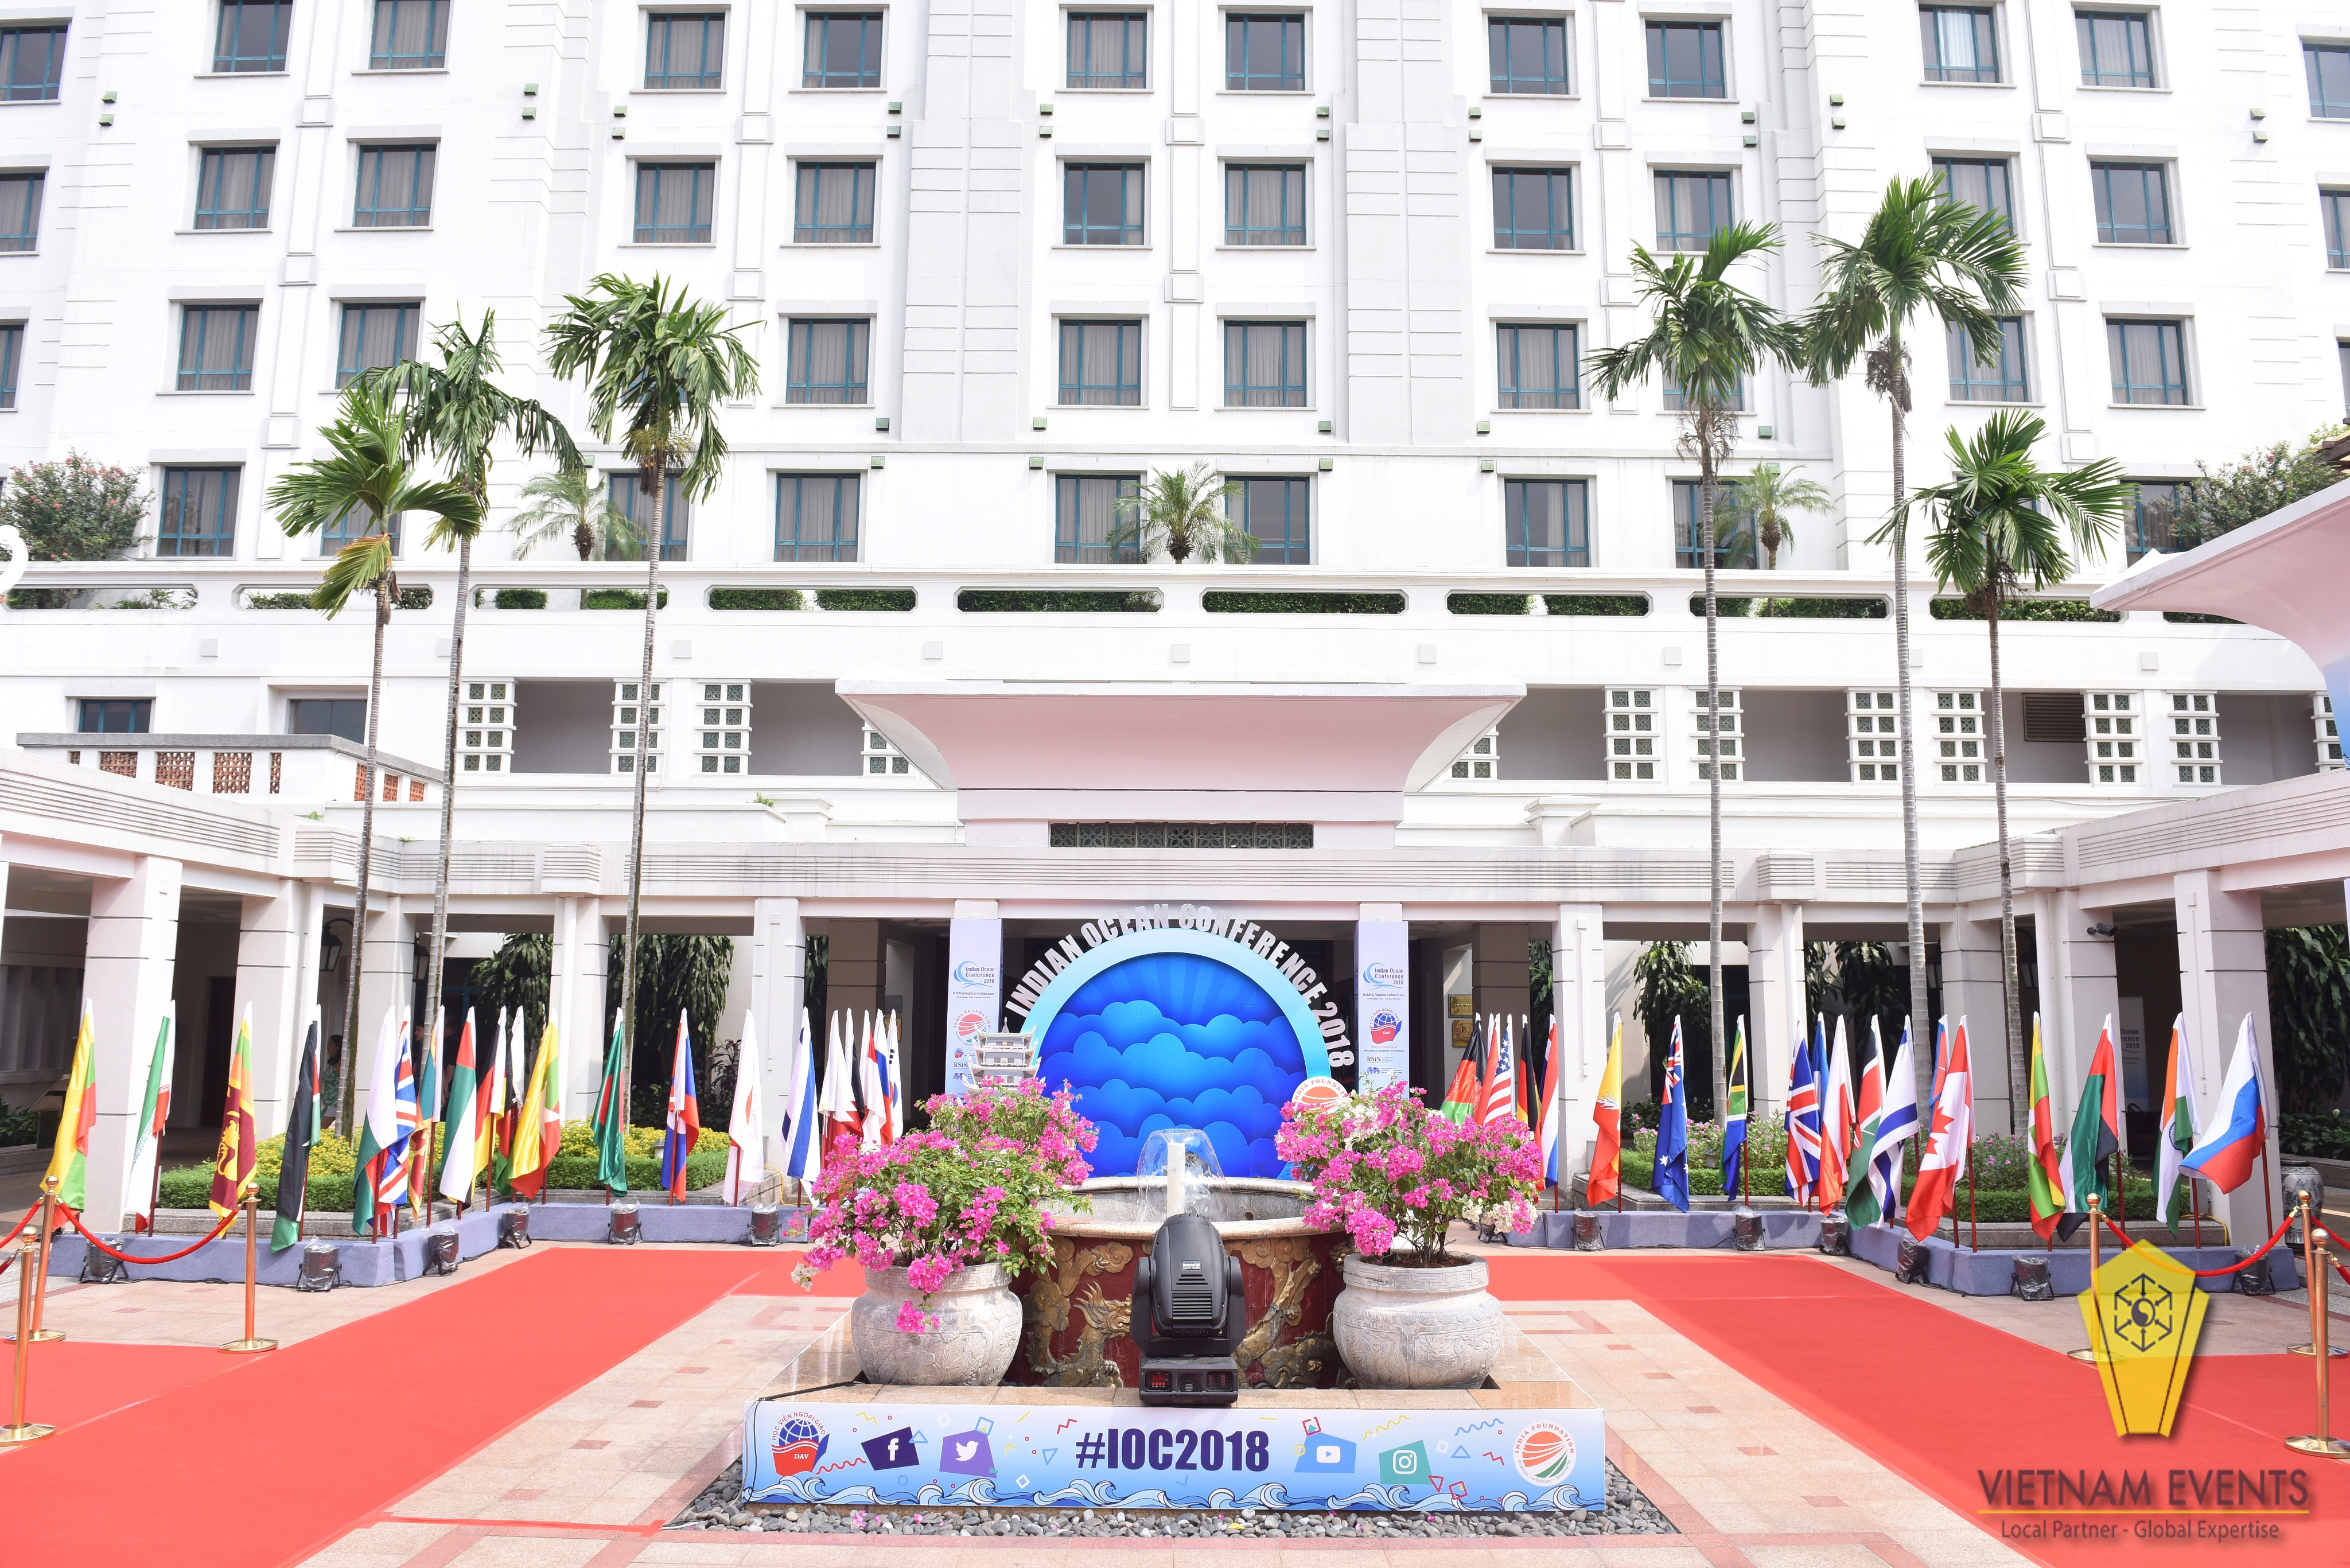 Indian Ocean Conference 2018 in Hanoi